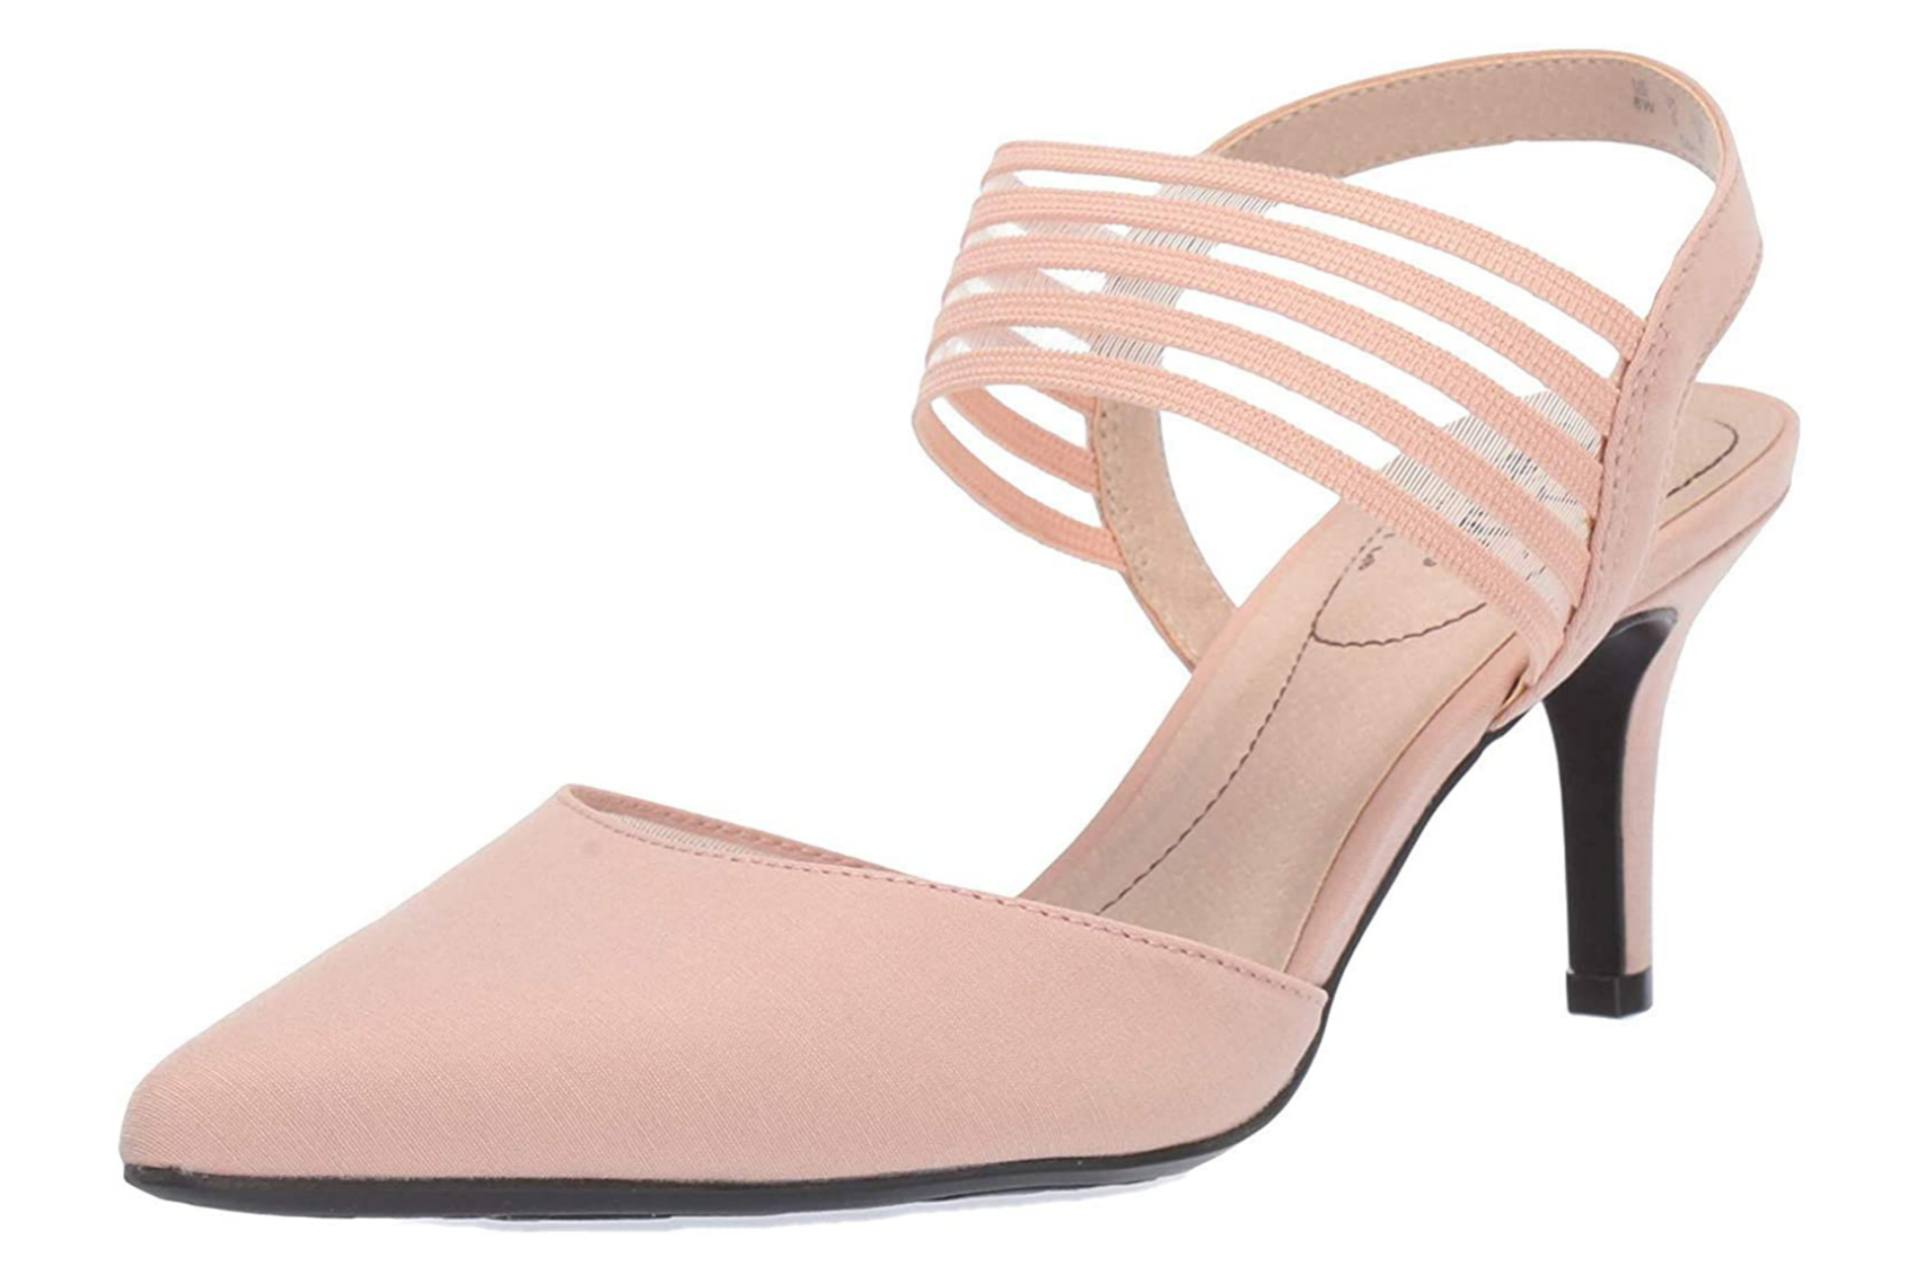 Best quality stylish shoes for women